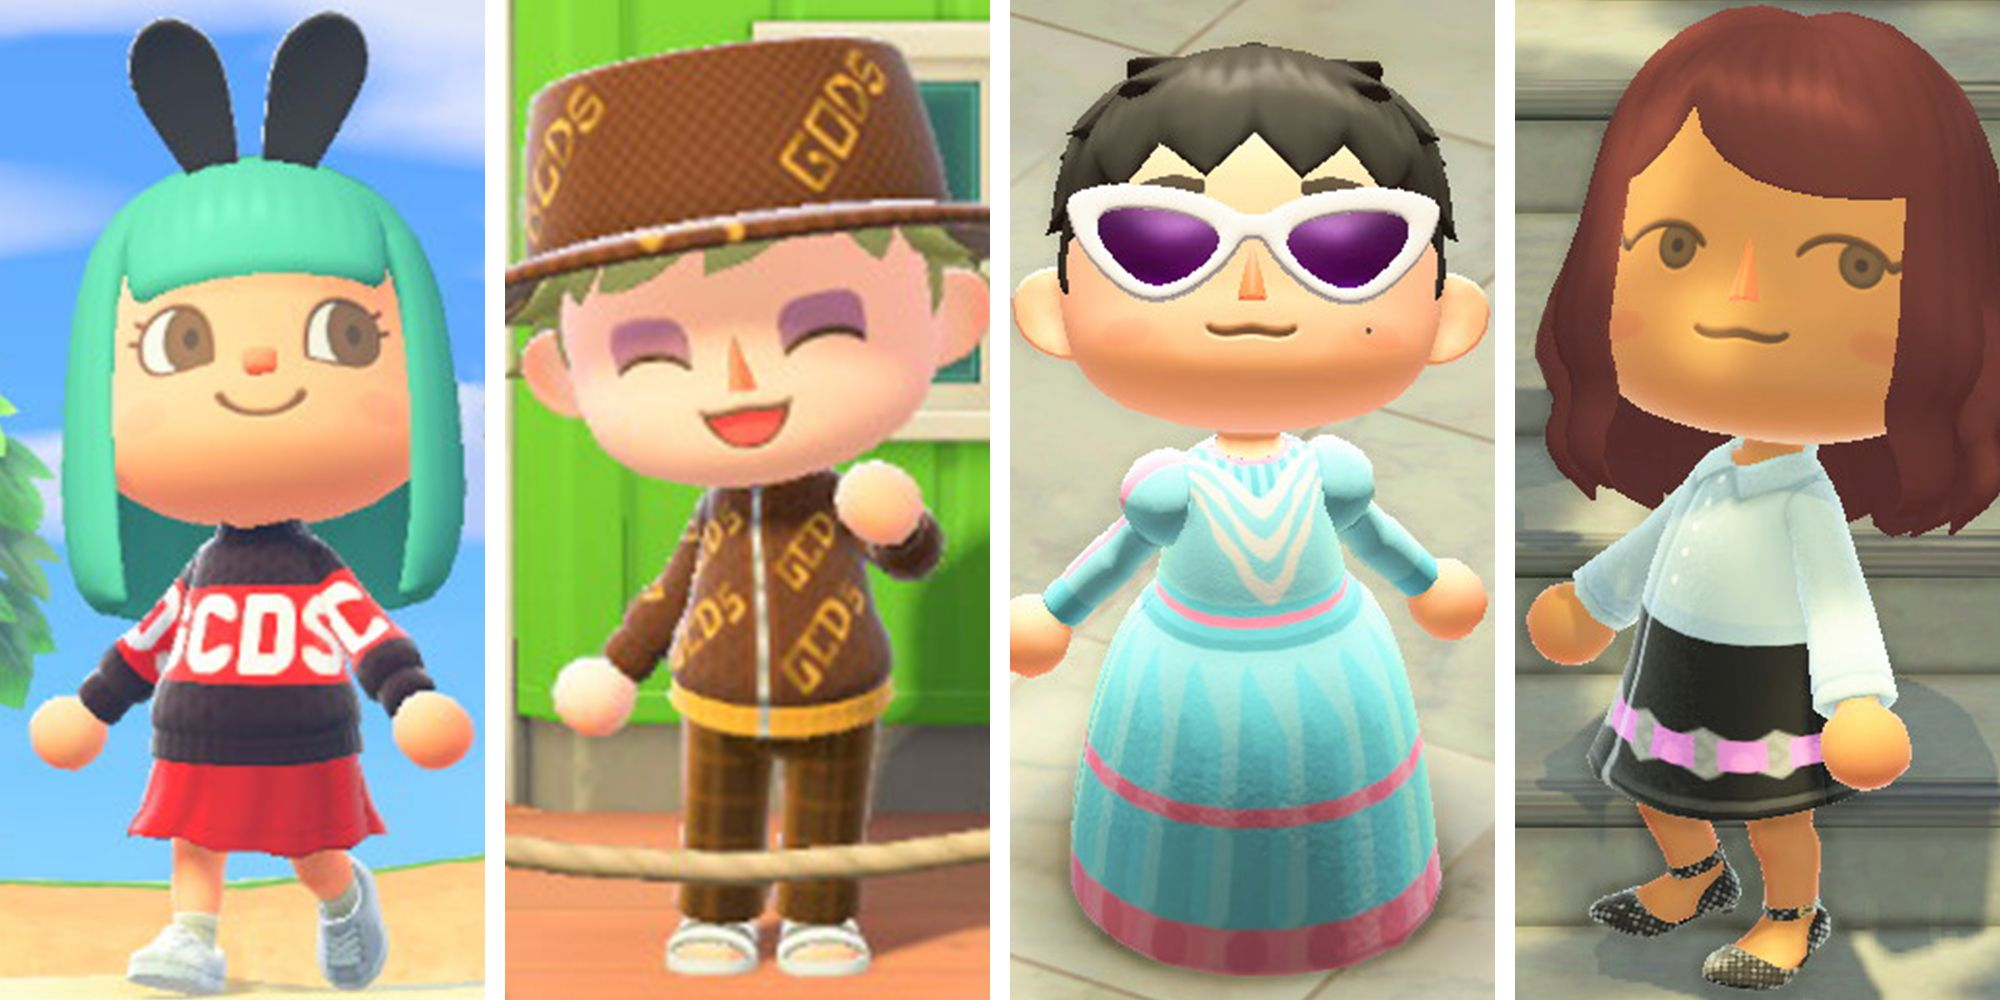 animal crossing designs by marc jacobs and gcds